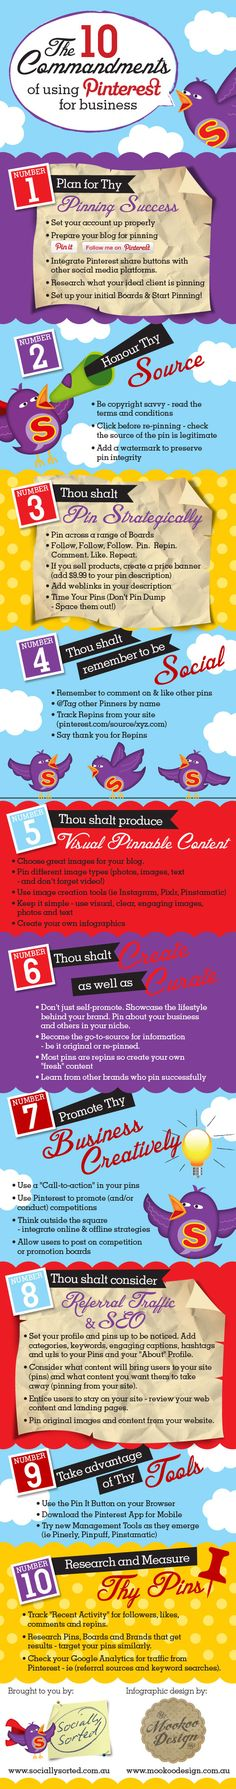 The 10 Commandments of Using Pinterest for Business | I dieci comandamenti per usare Pinterest per il Business